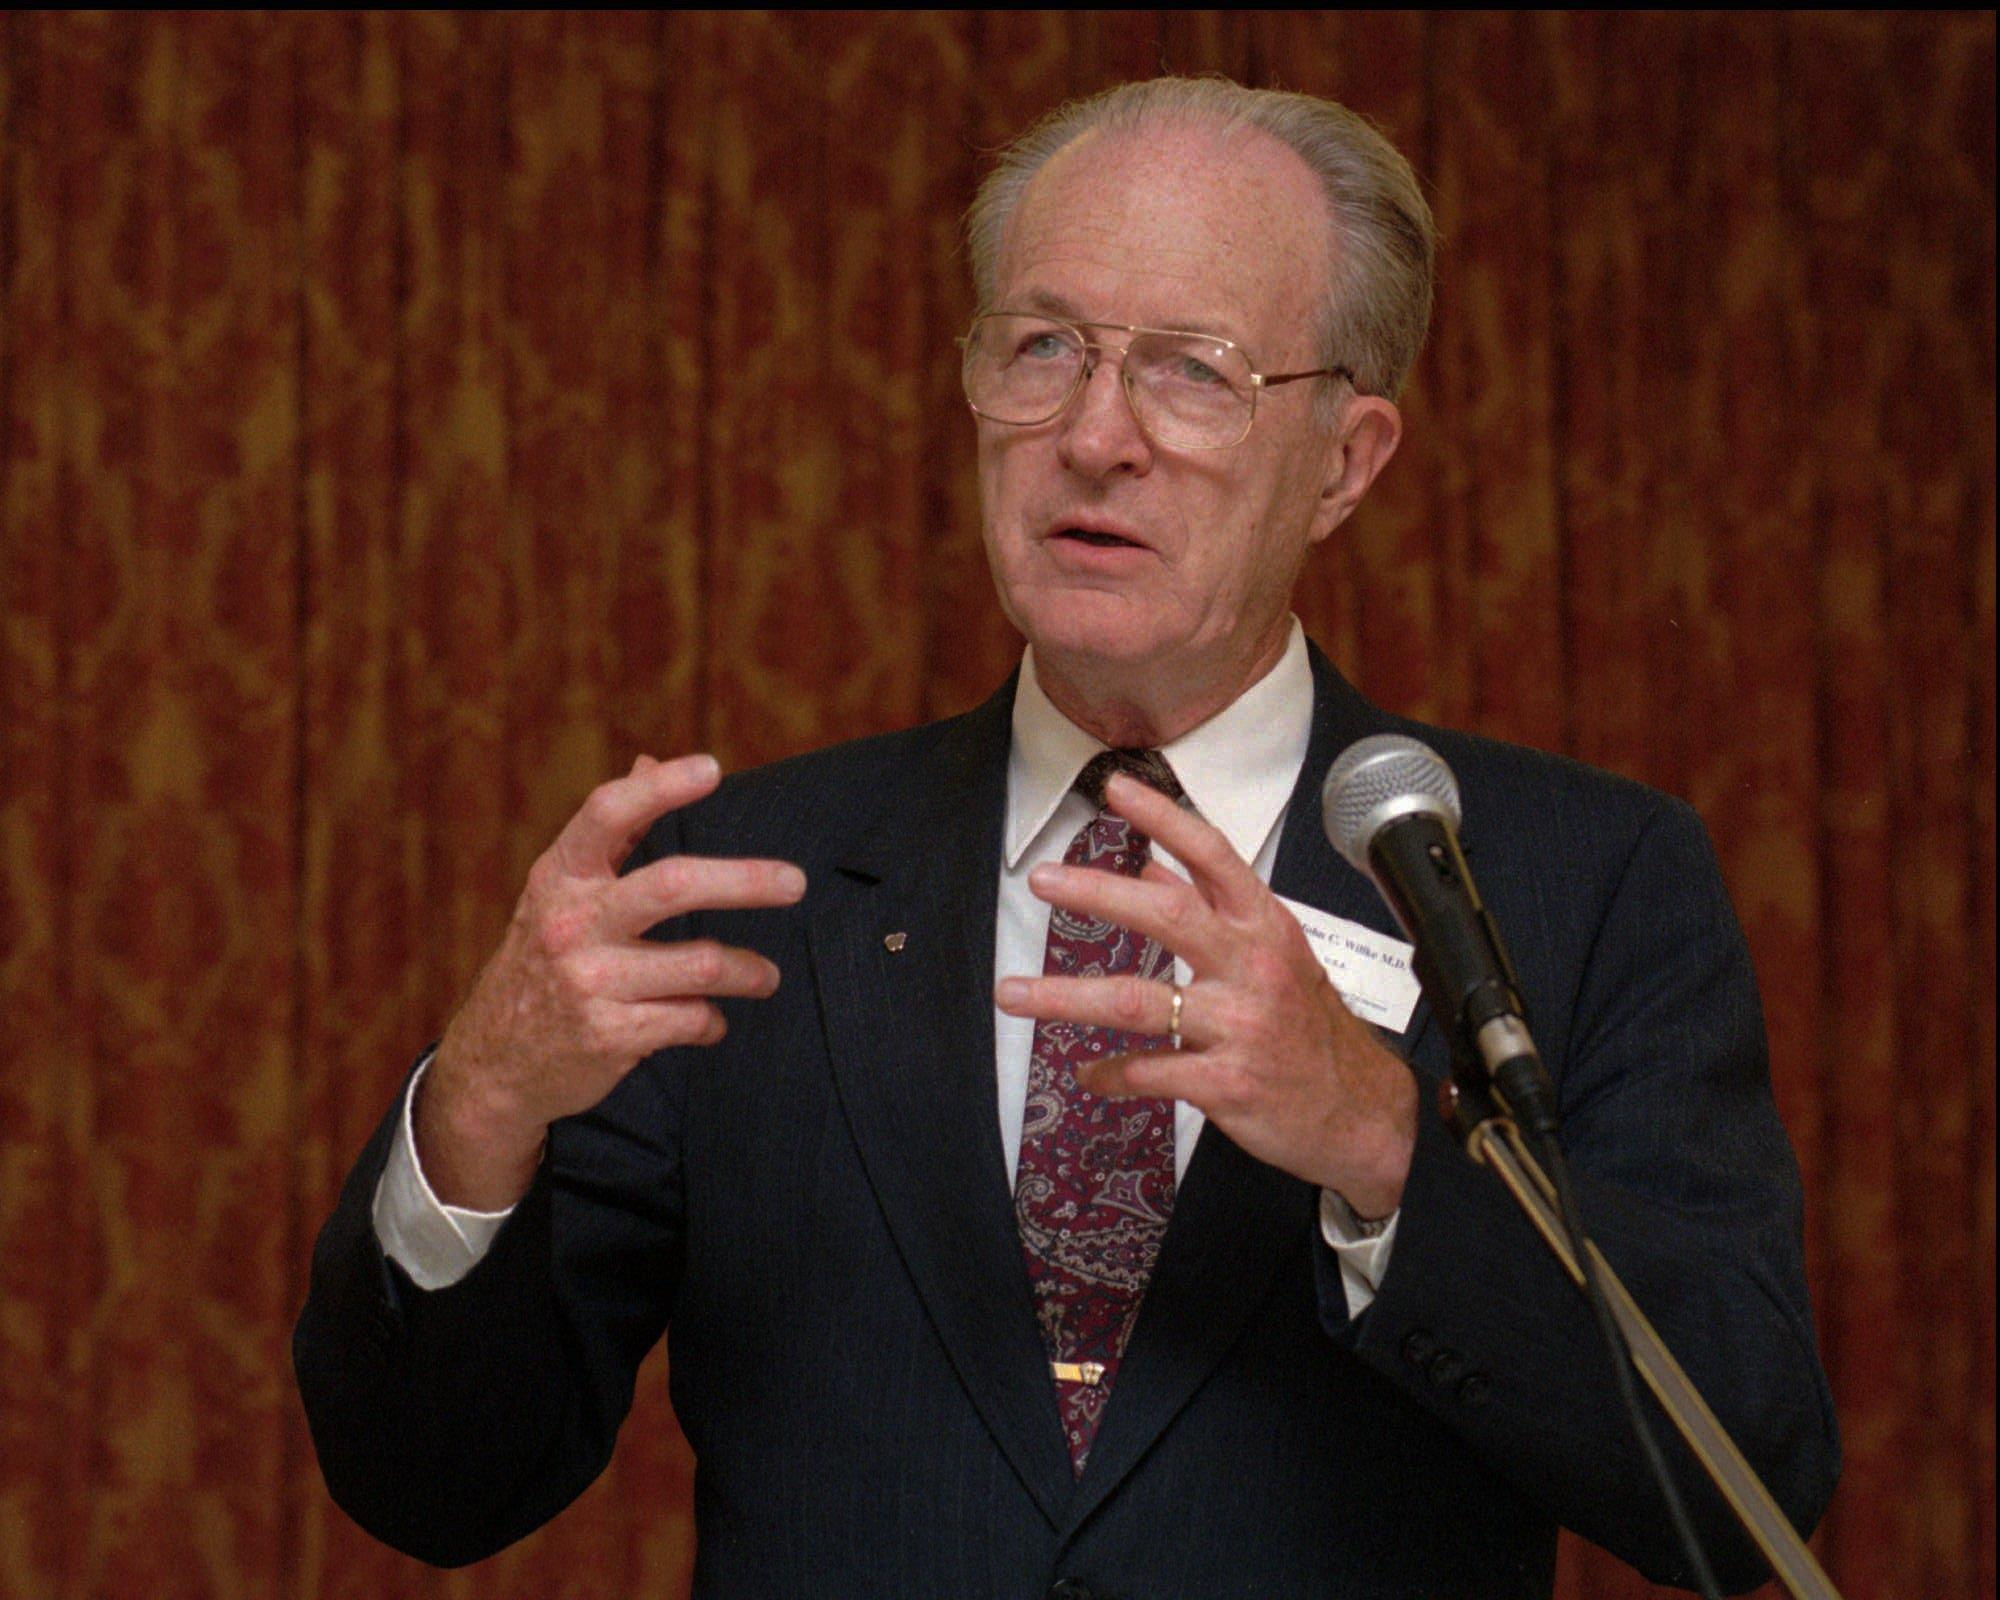 Pro-life activist Dr. John Willke dies at 89